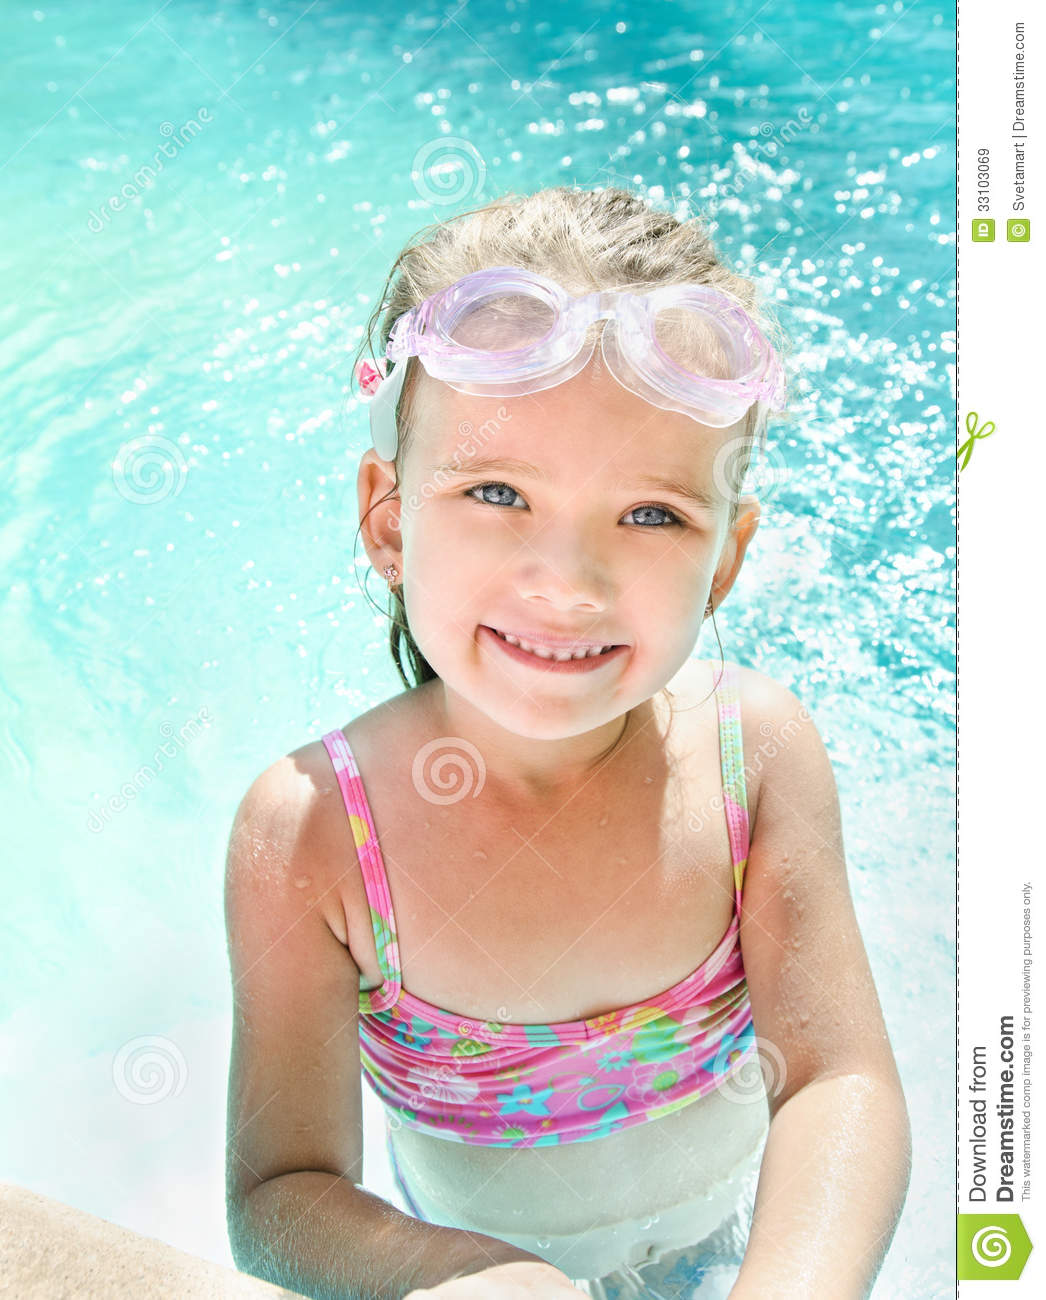 Cute little girl in swimming pool stock image image of for Cute pool pictures